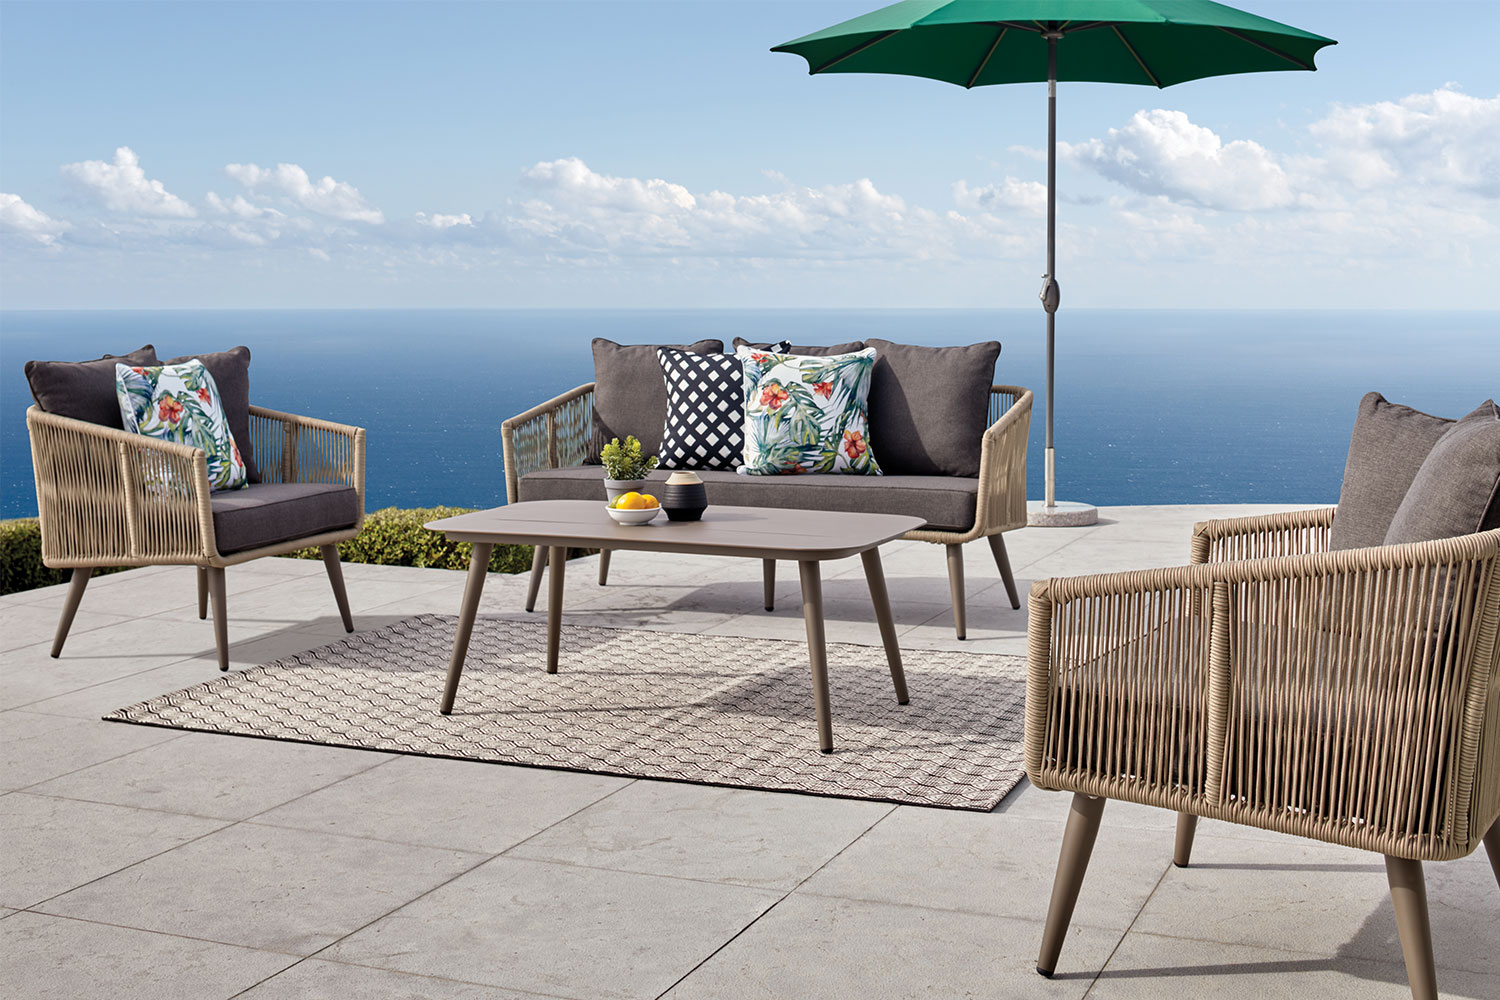 Outdoor Lounge Nz Outdoor Lounge Settings Harvey Norman New Zealand